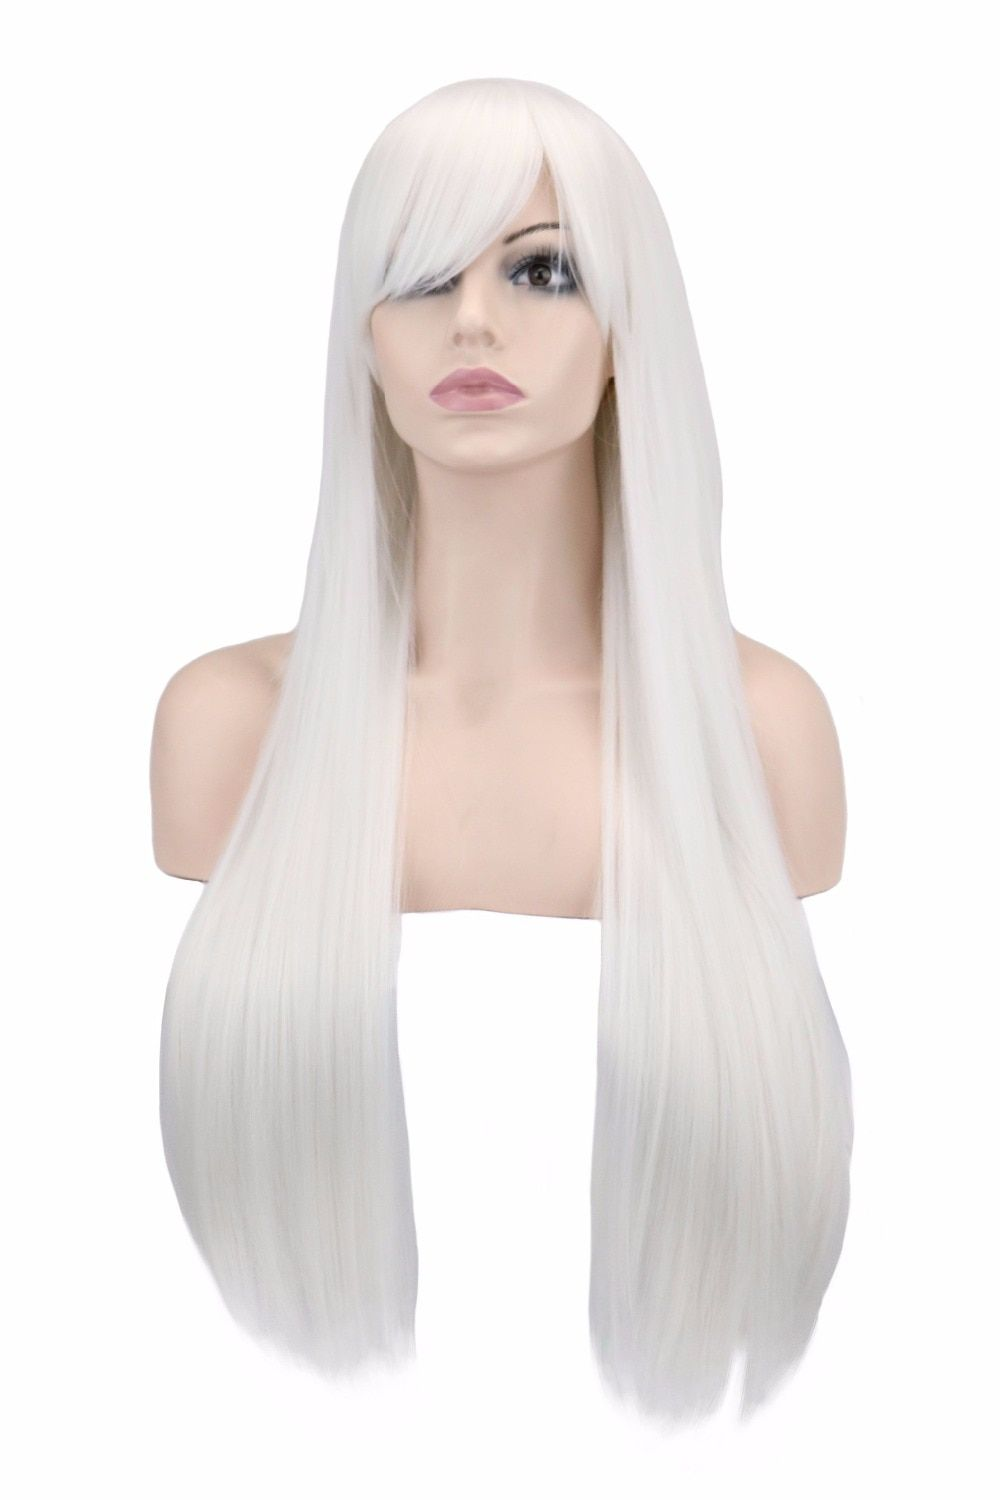 QQXCAIW Long Straight Women Men Costume Party Cosplay White 80 Cm Synthetic Hair Wigs